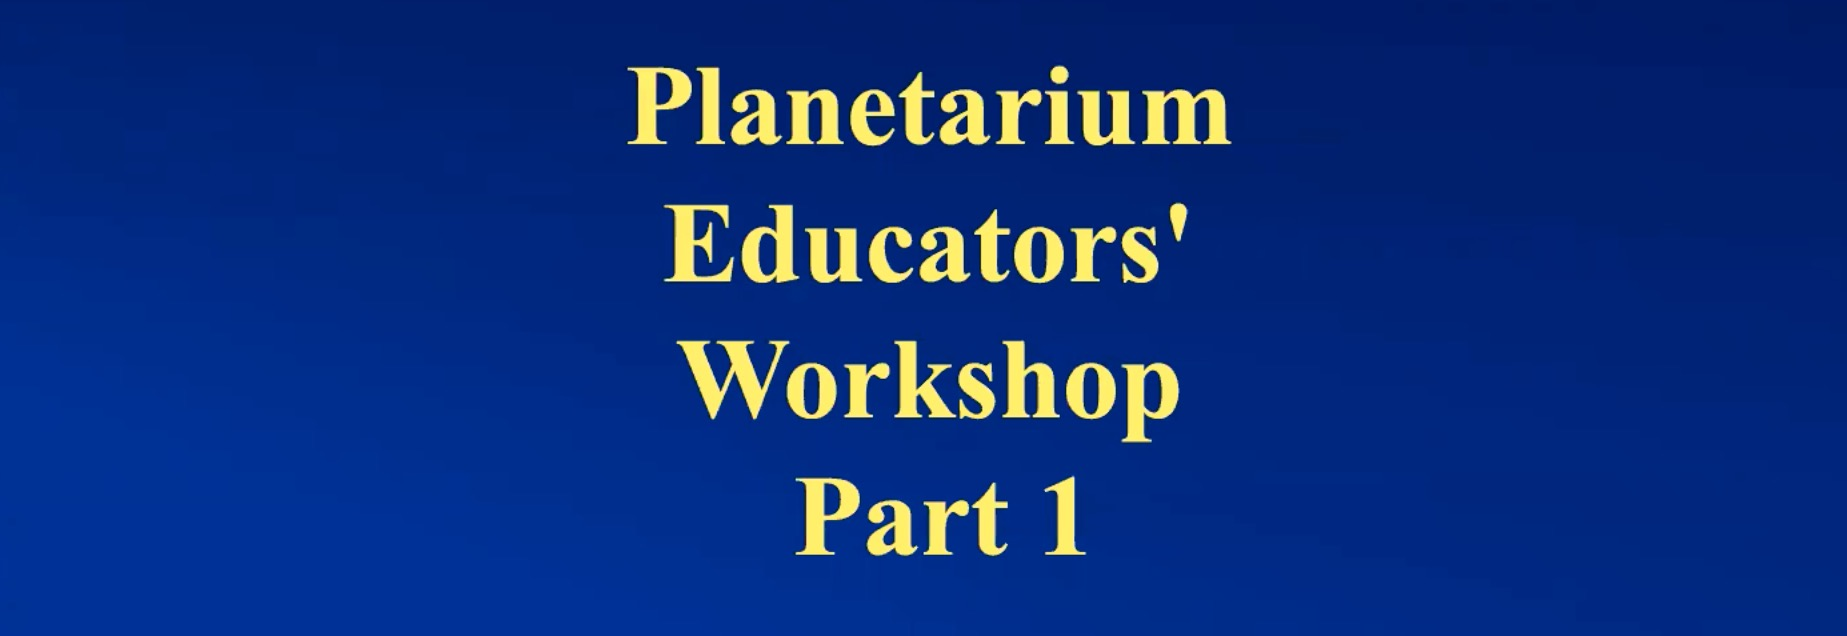 img news fulldome planetarium-educators-workshop-video-seminar